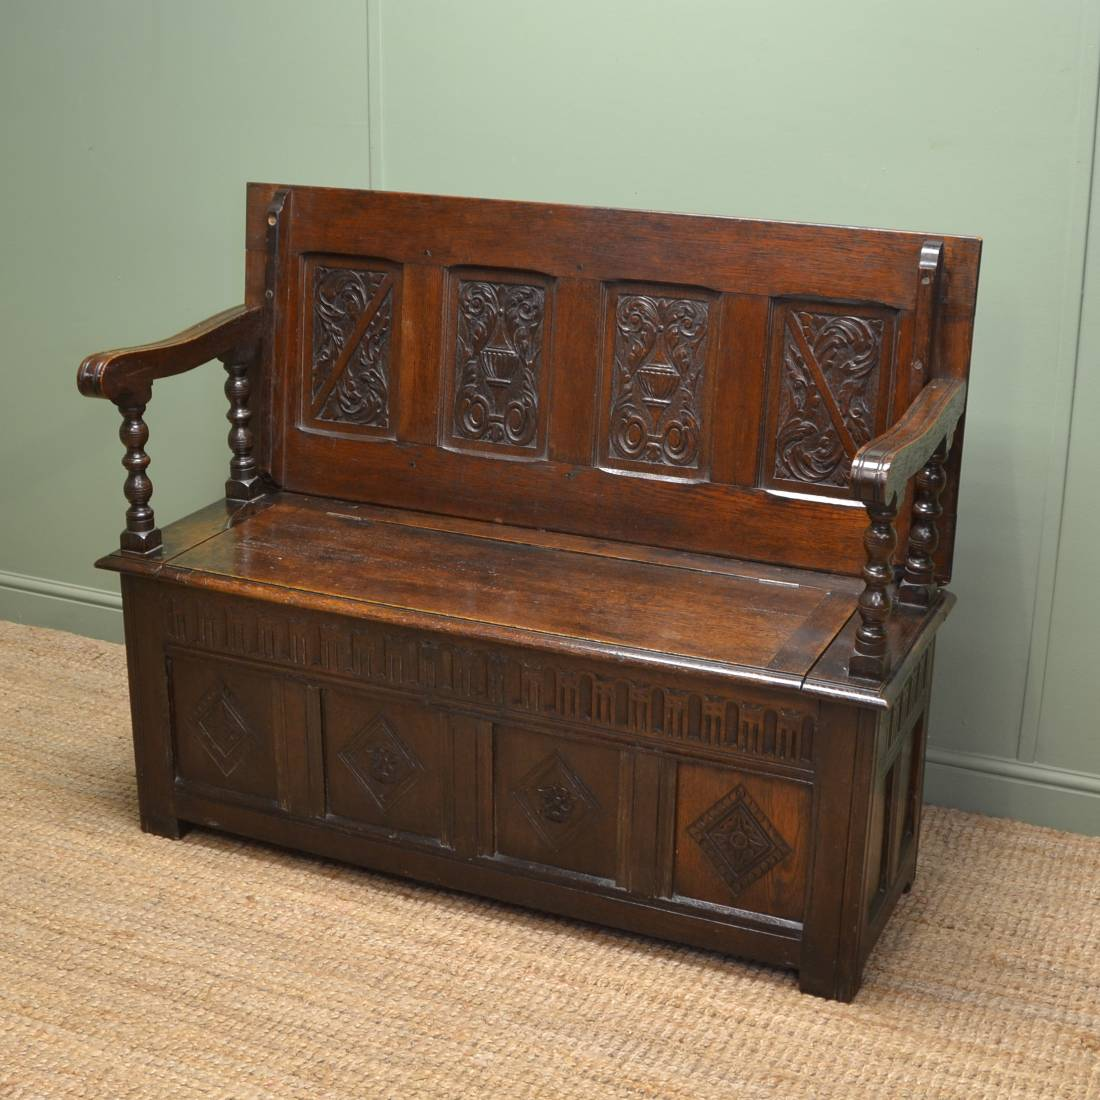 Antique furniture periods and dating